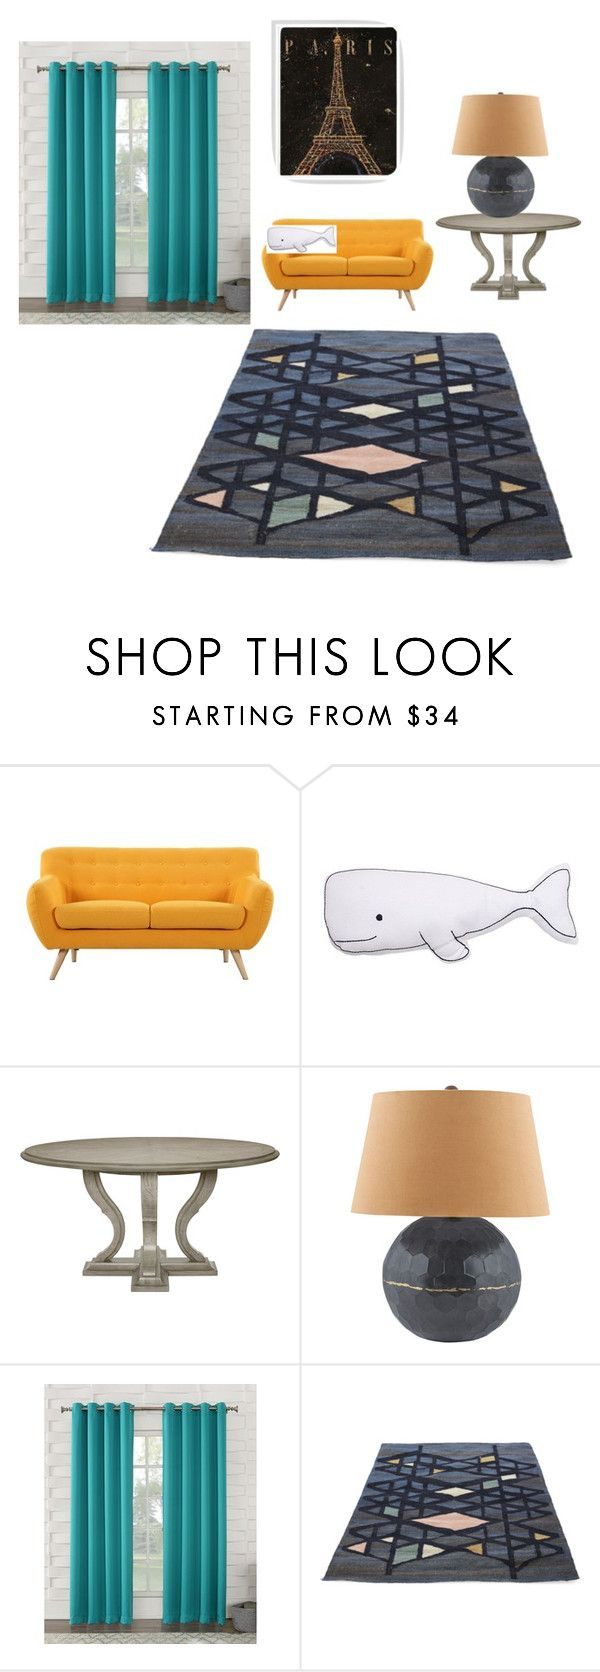 """Modern Home Living Room"" by gavwhite ❤ liked on Polyvore featuring interior, interiors, interior design, home, home decor, interior decorating, Madison, Thro, Lazy Susan and Sun Zero"